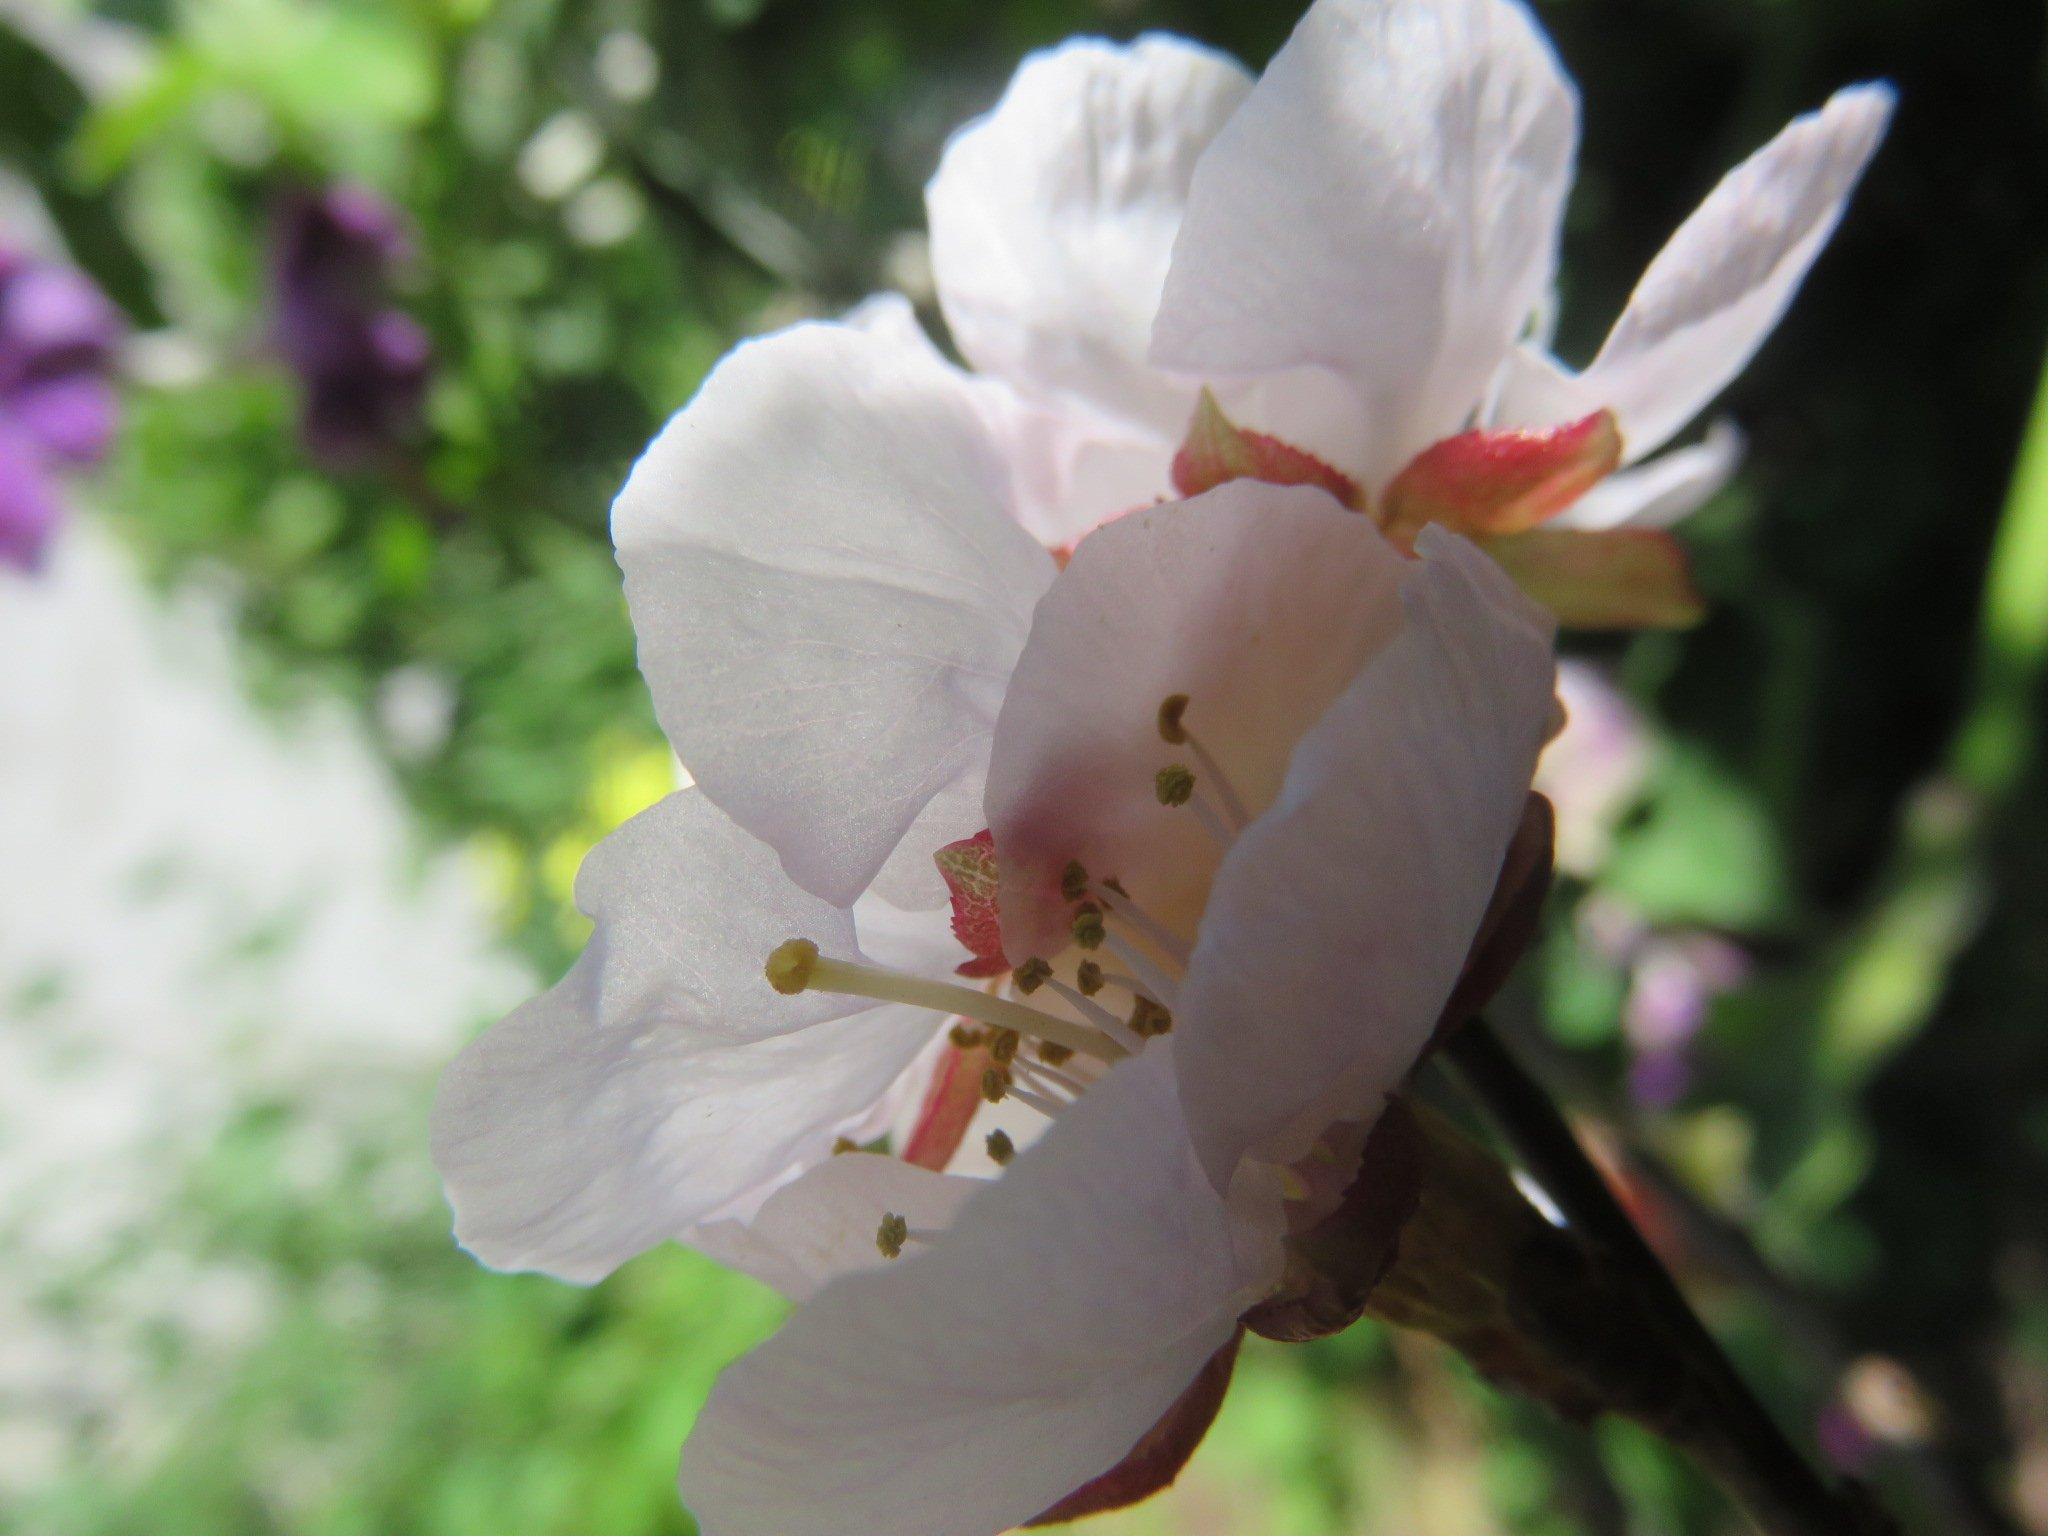 The first blossoms of a new apricot tree